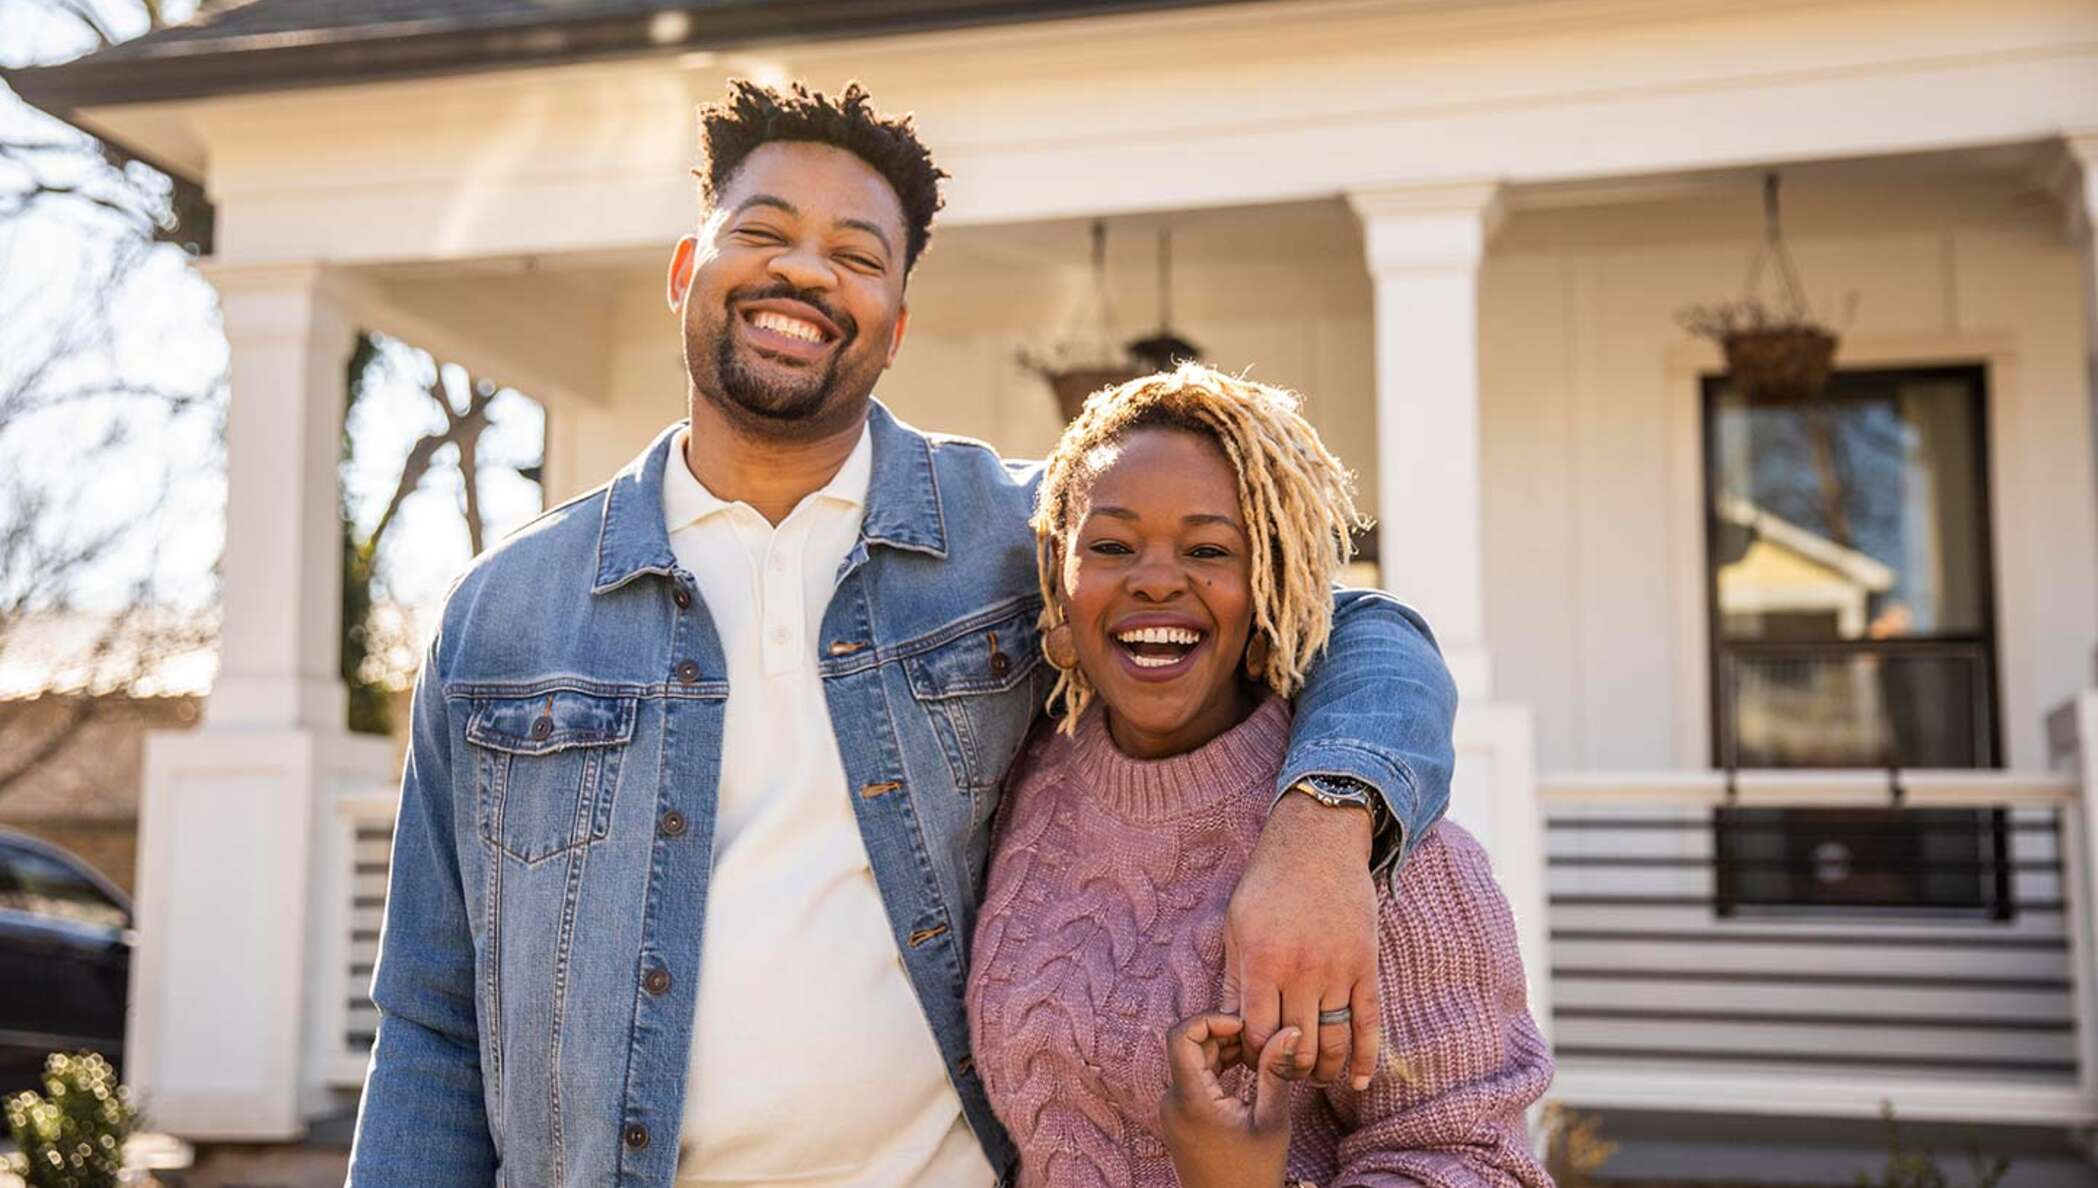 Image of two people outside their new home.